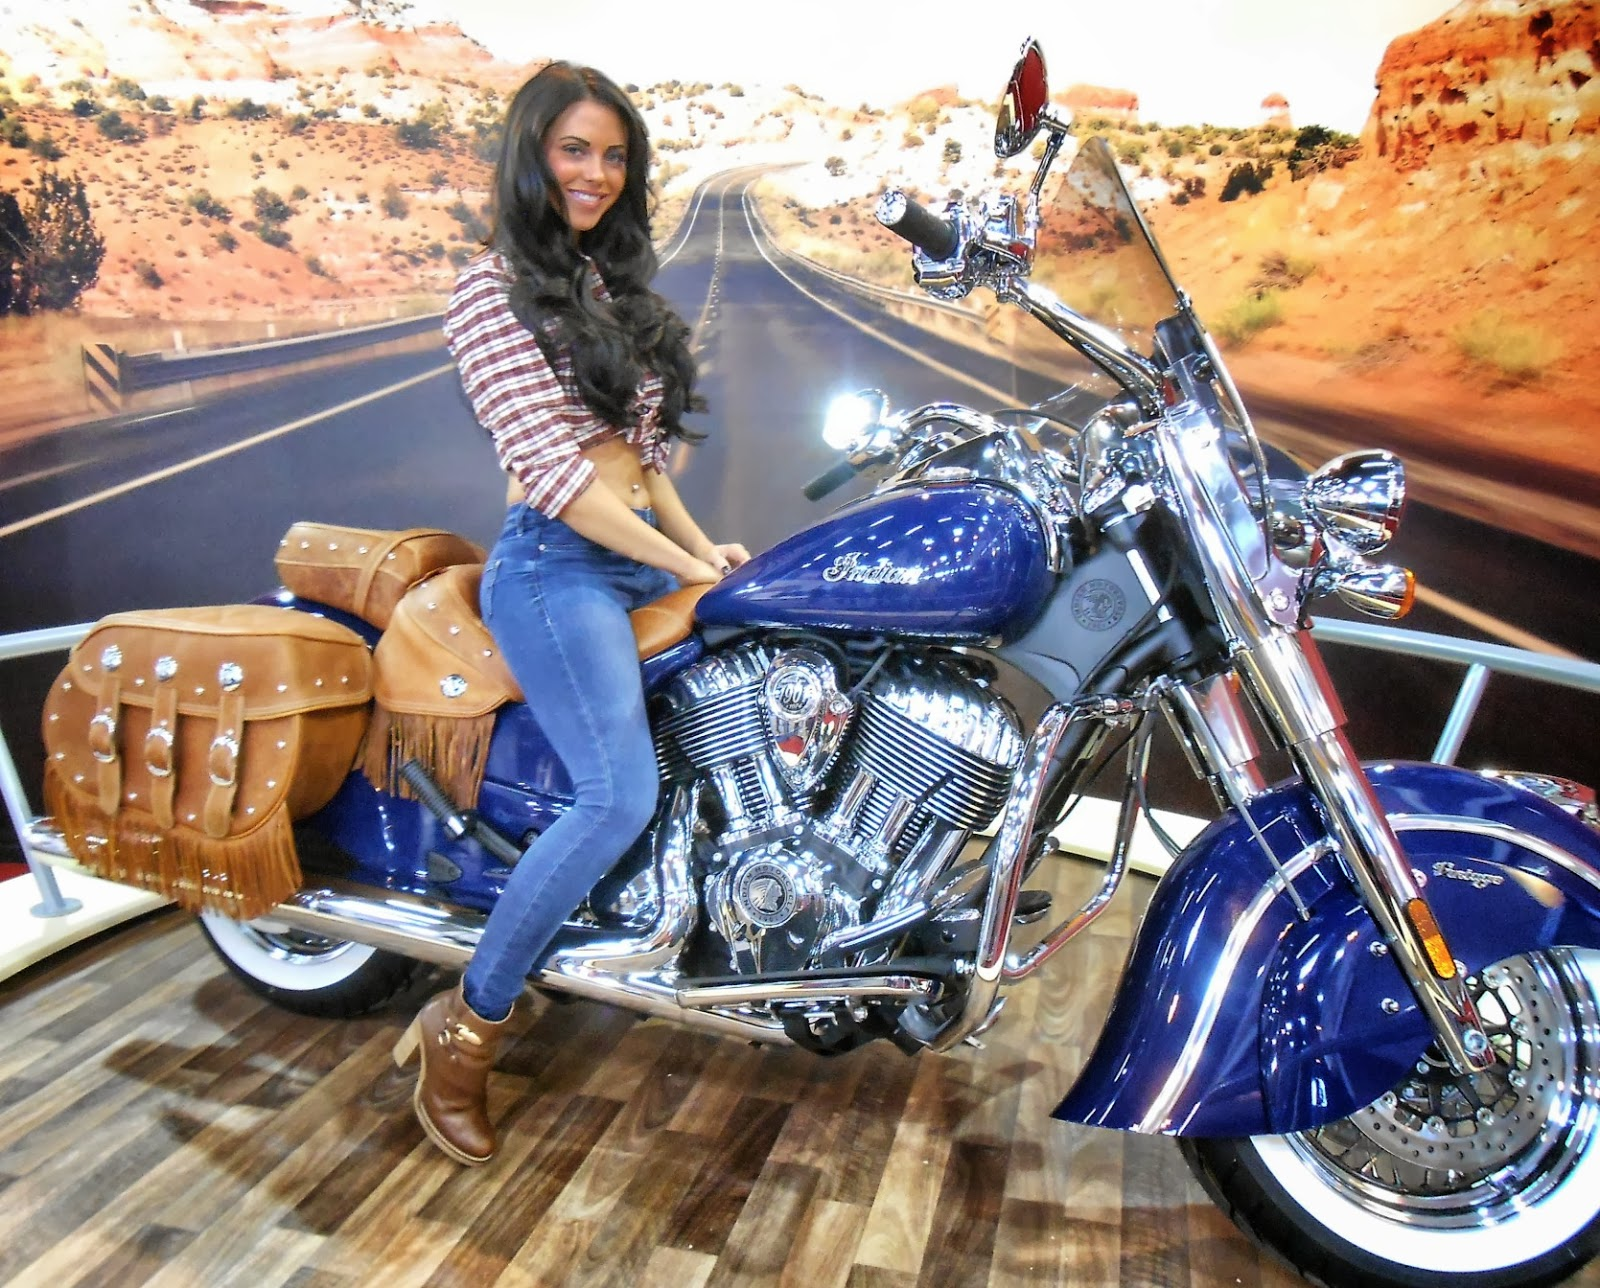 New indian motorcycles wallpaper wallpapersafari - Pictures of chicks on bikes ...